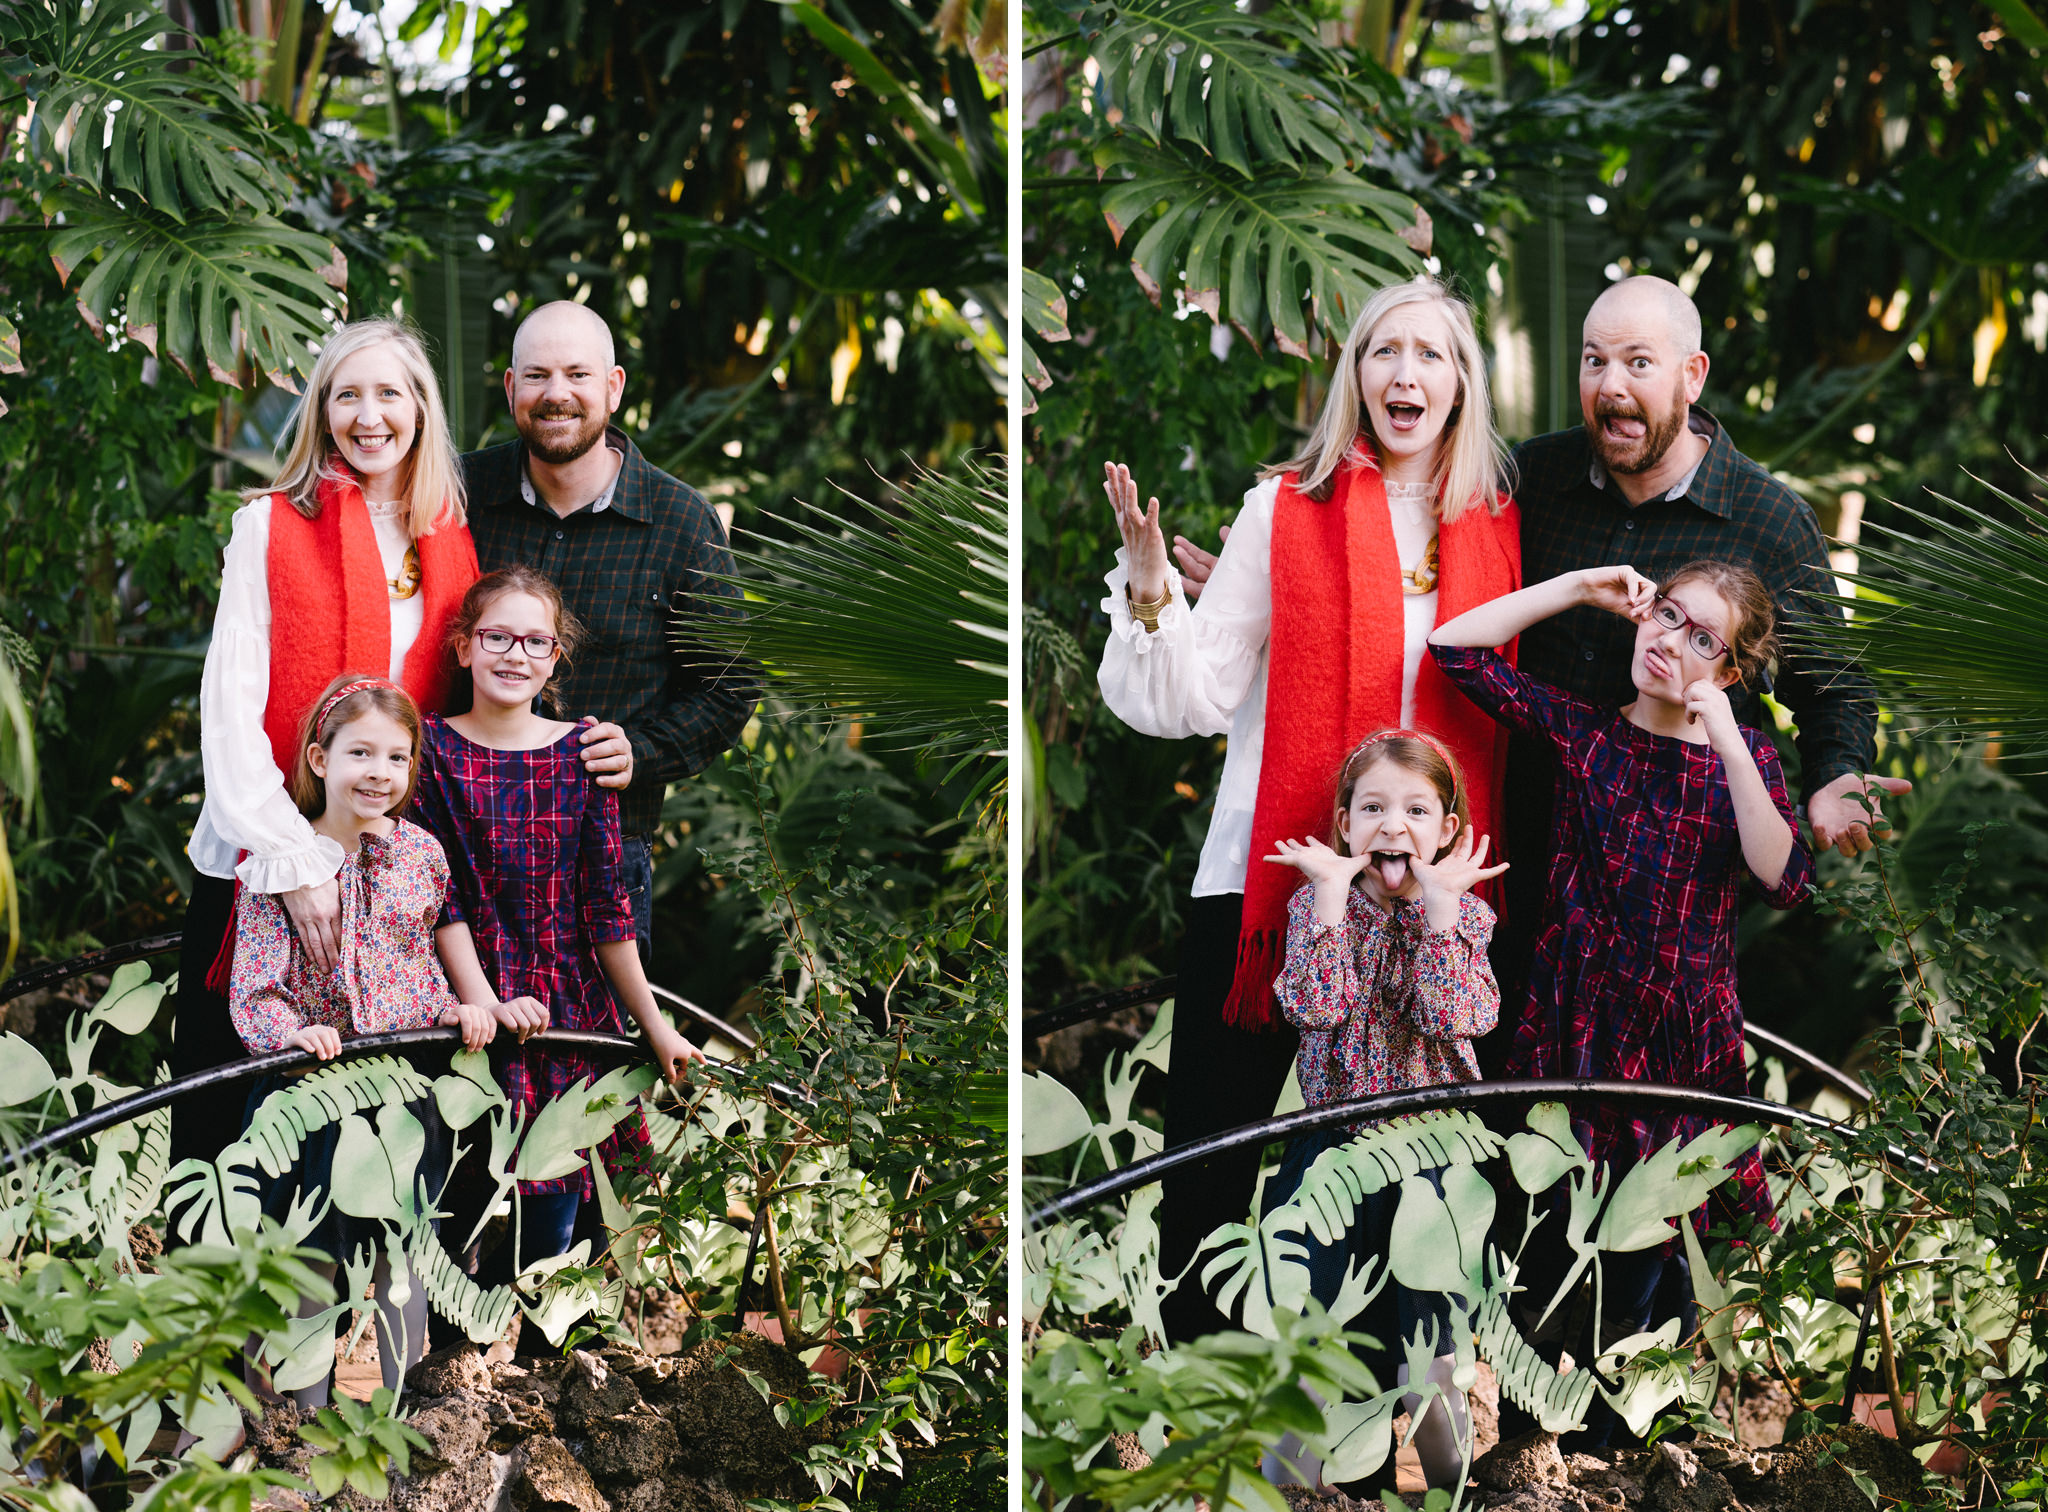 003-rempel-photography-chicago-wedding-inspiration-oak-park-conservatory-family-photo-session-bailey-forest-park-berwin-area-photographers.jpg